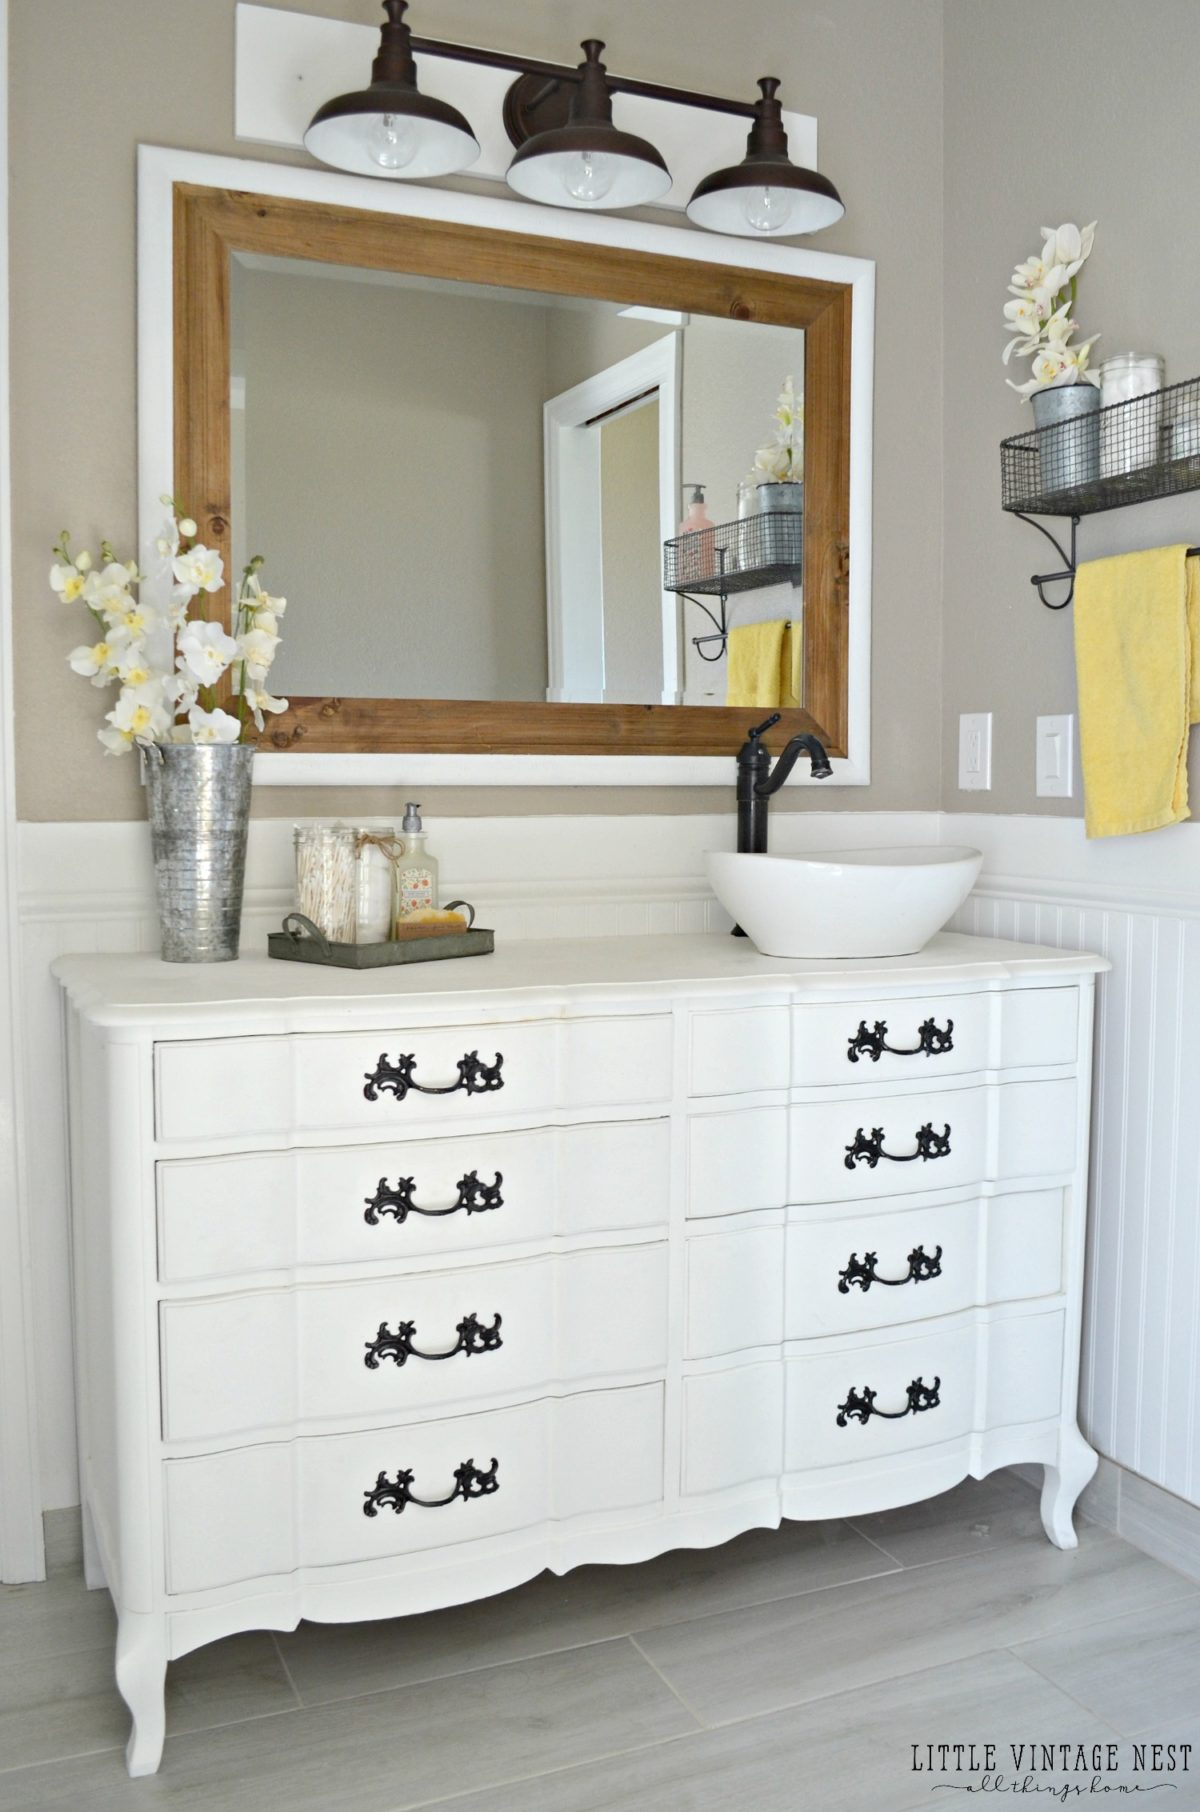 30 Inch Bathroom Vanity With Drawers On Left Architecture Home